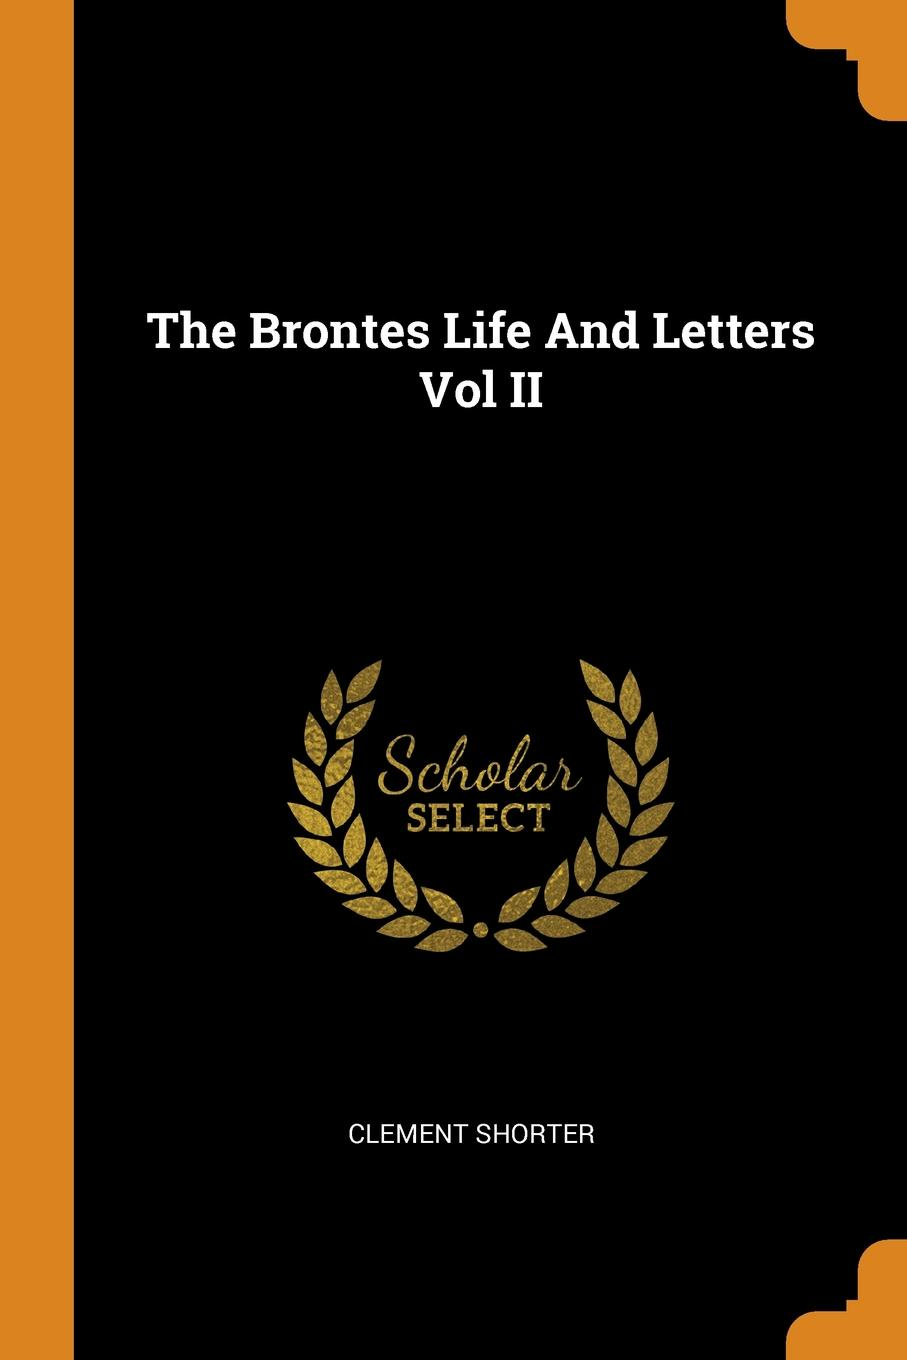 Clement Shorter The Brontes Life And Letters Vol II